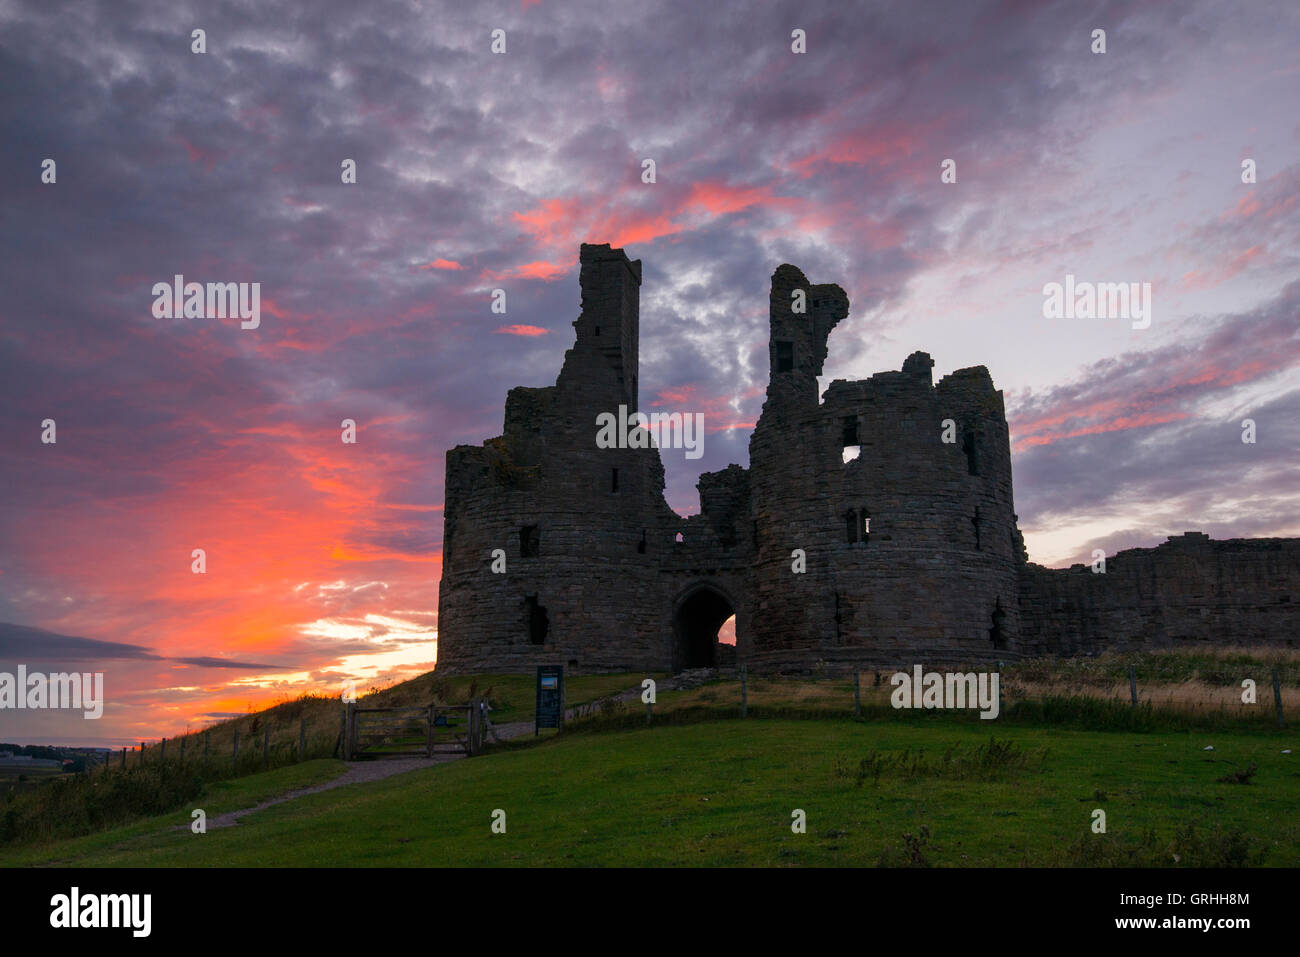 The foreboding ruins of Dunstanburgh Castle at sunset on the coast of Northumberland, England UK - Stock Image